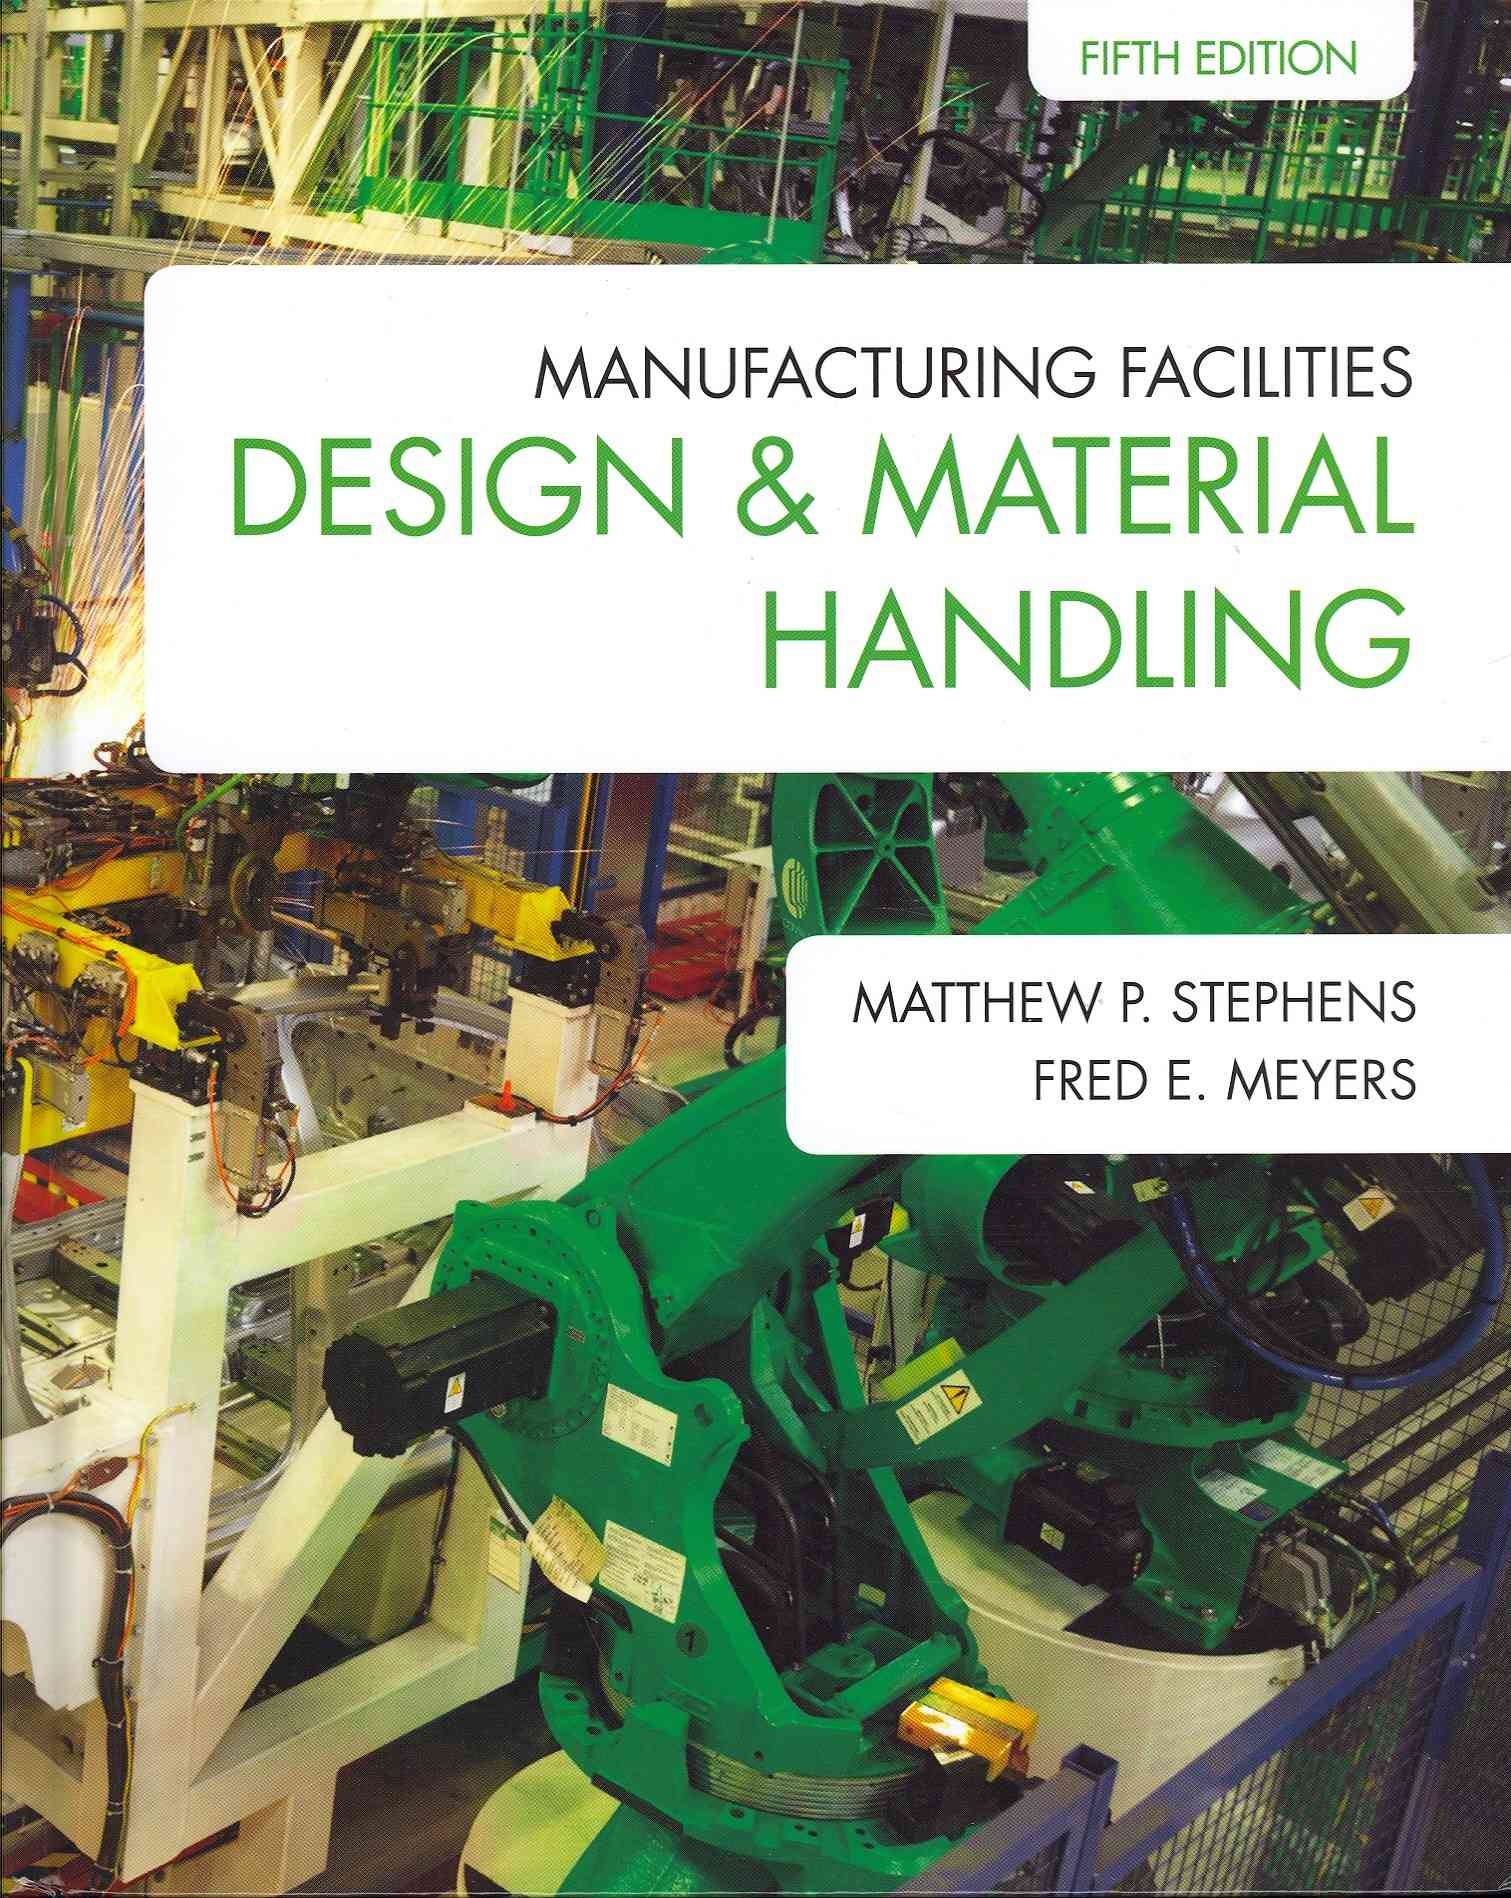 Manufacturing Facilities Design & Material Handling By Stephens, Matthew P./ Meyers, Fred E.